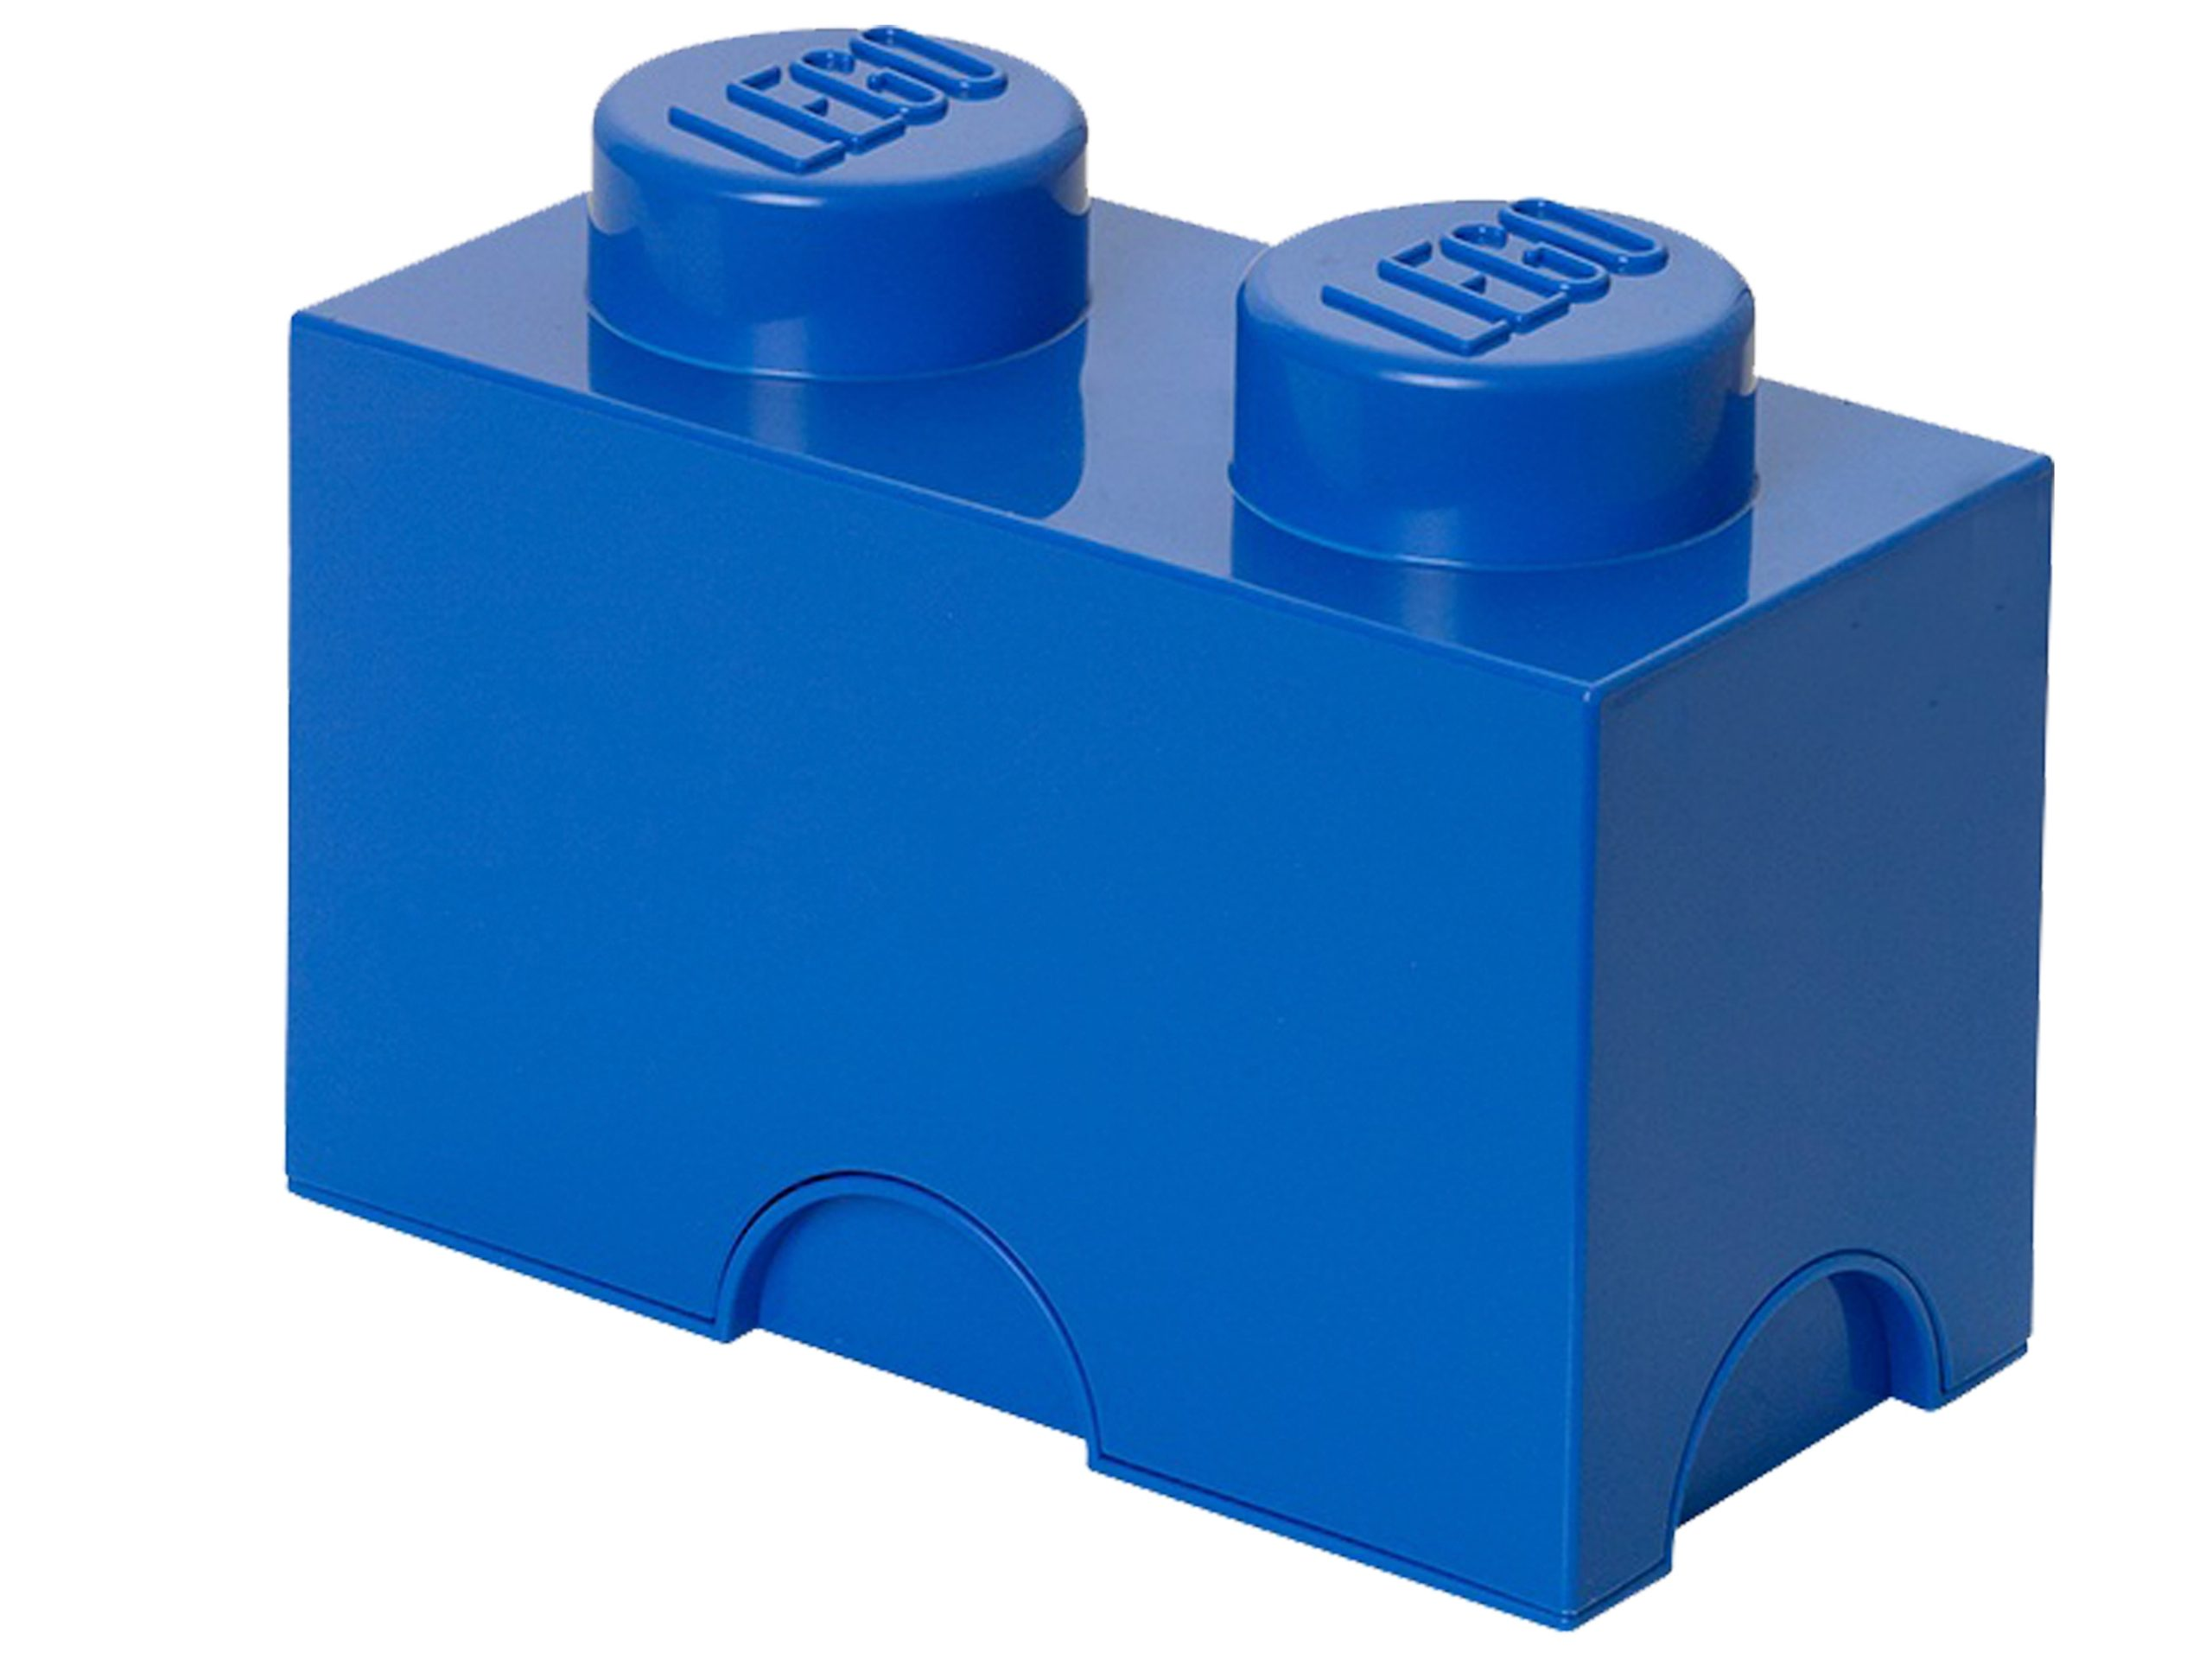 lego 5004280 2 stud blue storage brick scaled